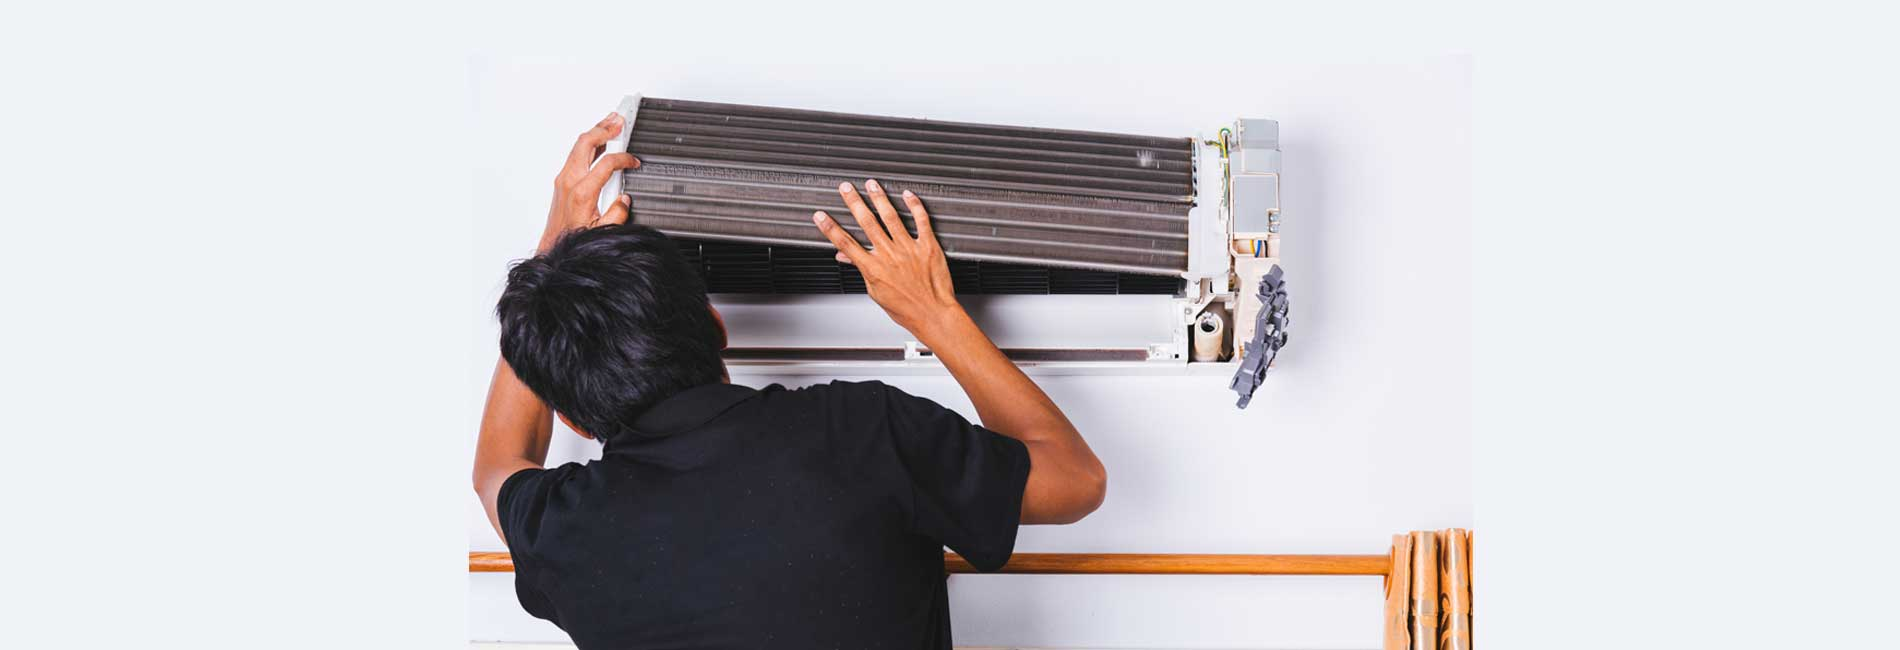 AC Uninstallation Charges in thirumudivakkam